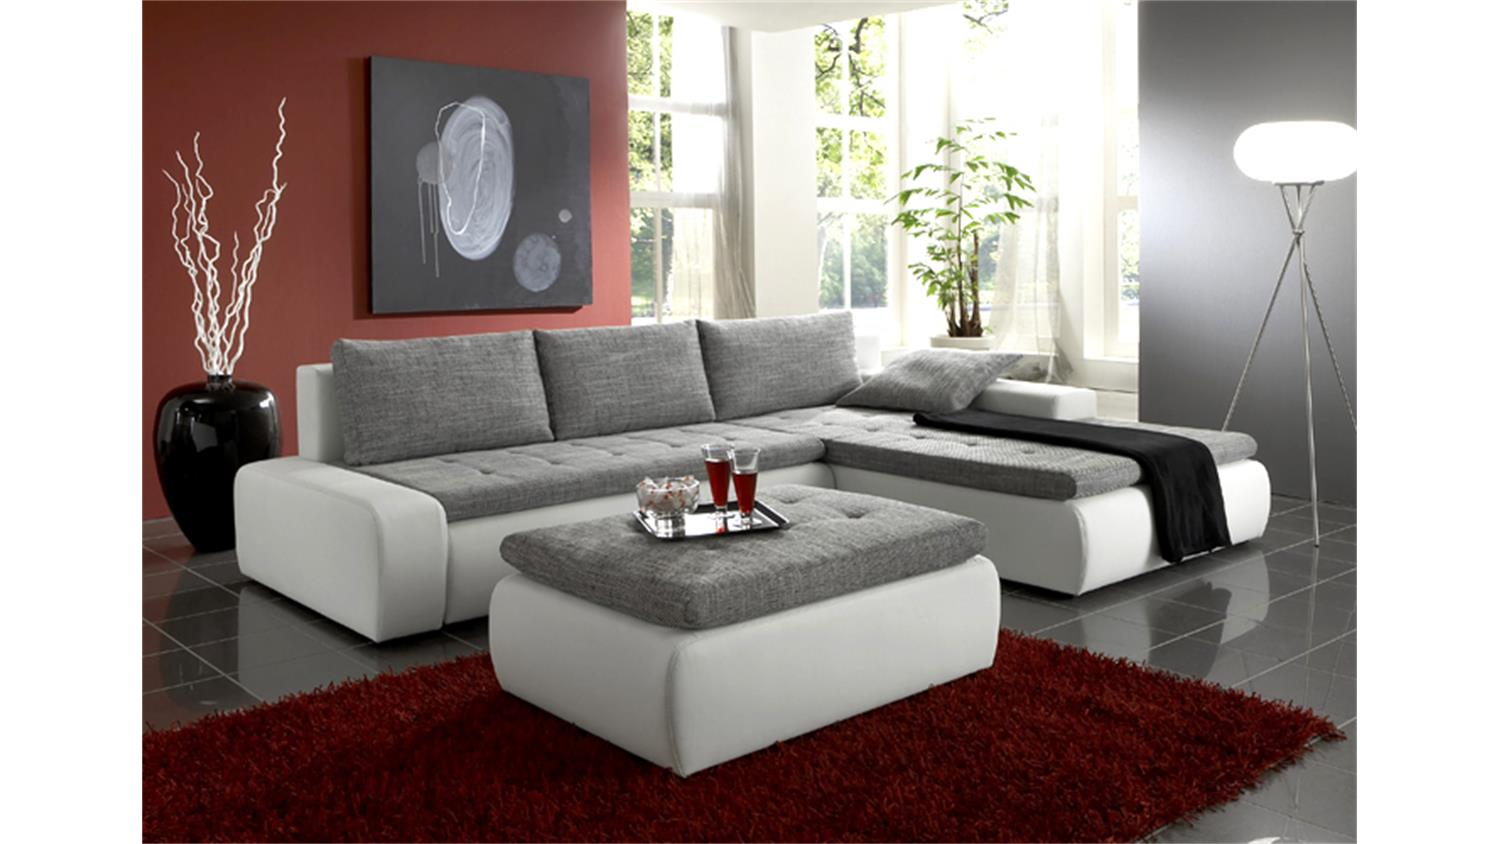 ecksofa mit lattenrost und matratze awesome kaufunique vizir sitzer mit matratze braun with. Black Bedroom Furniture Sets. Home Design Ideas